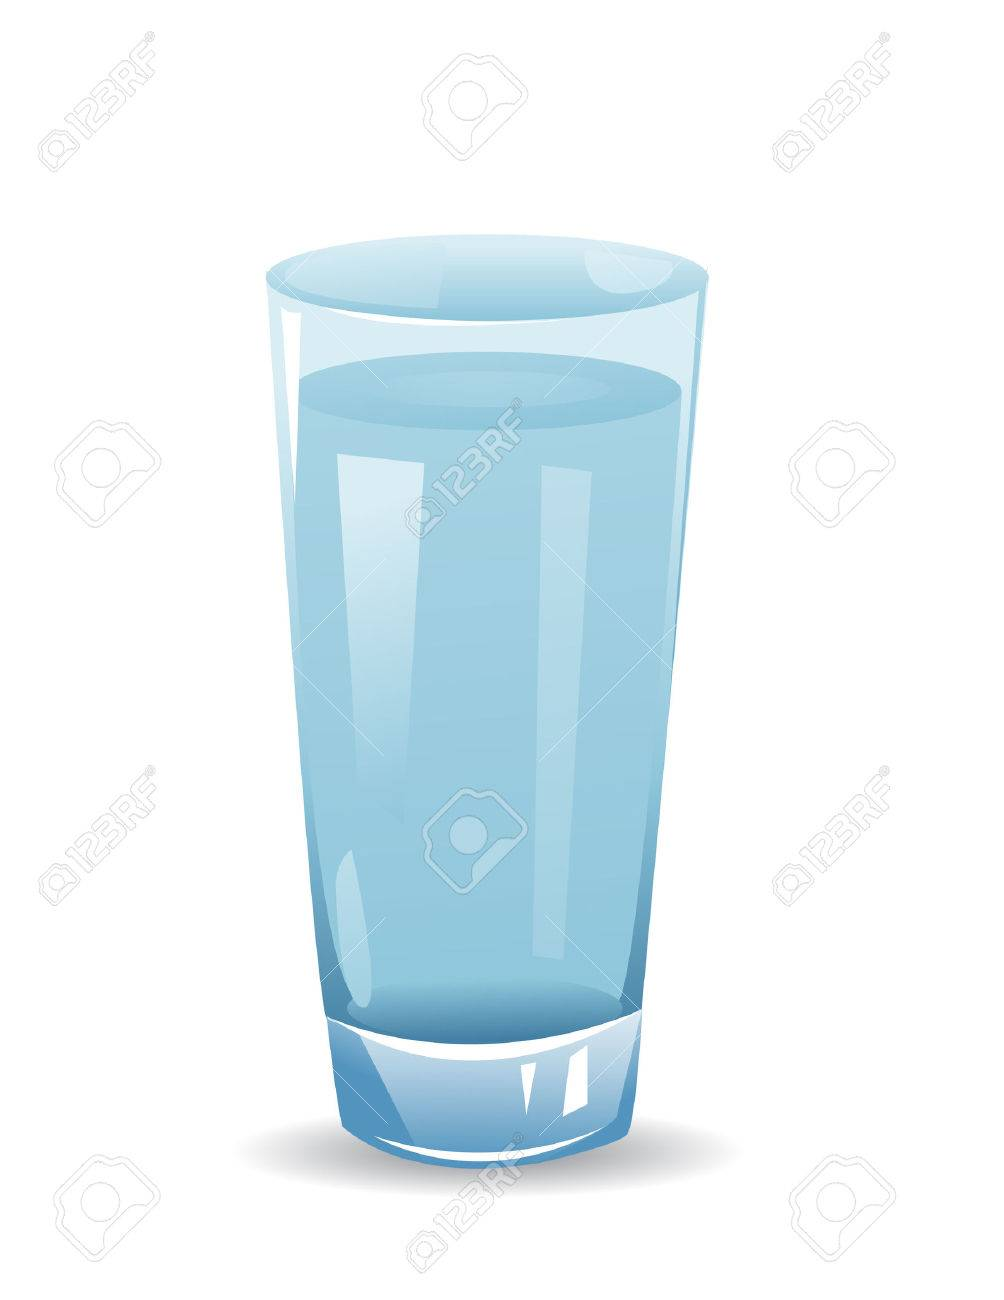 glass with water isolated illustration on white background - 43558683